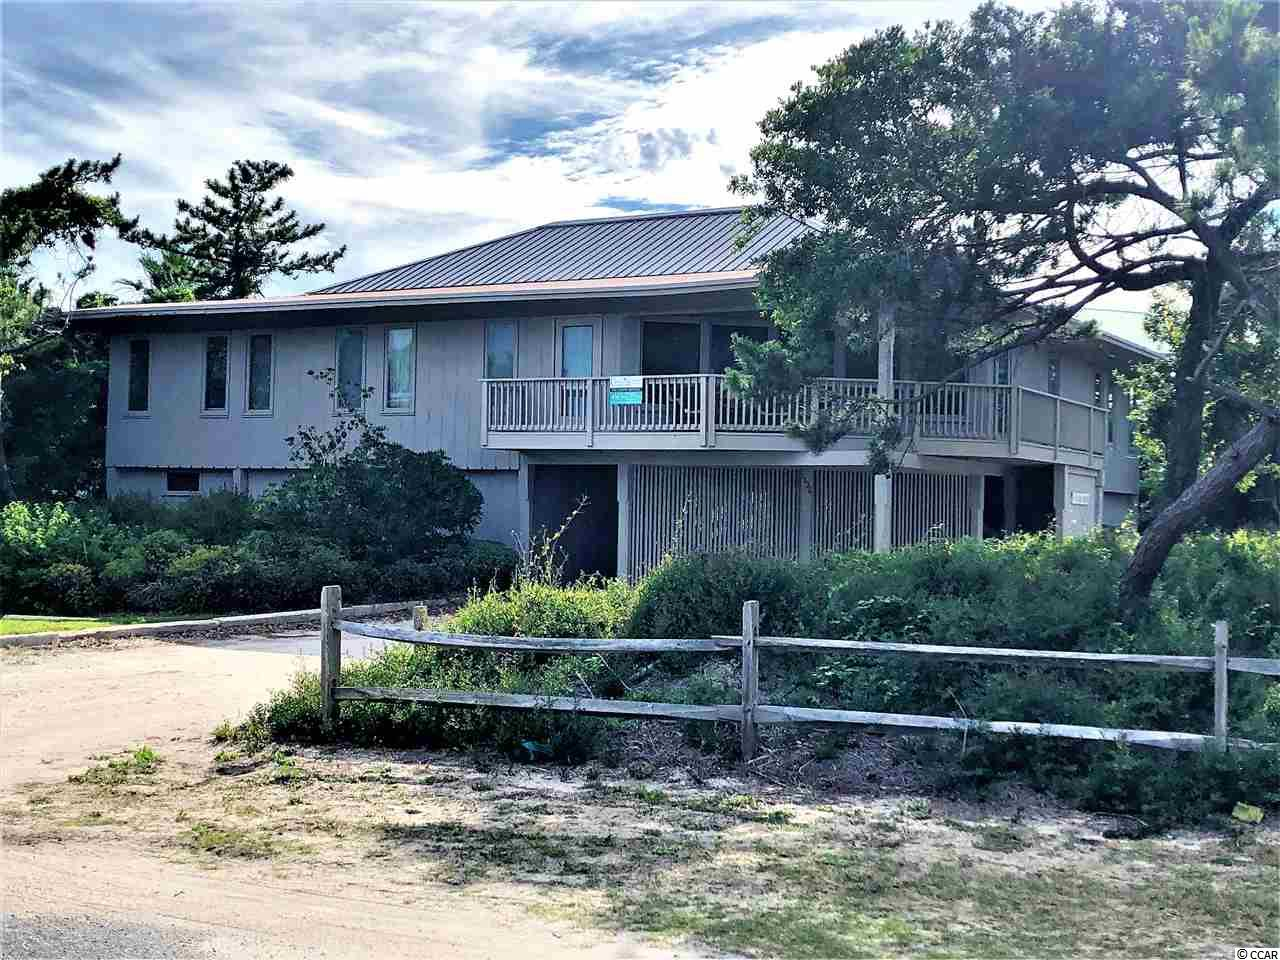 One block from the ocean with water access to the inlet, this one of a kind, five bedroom beach house is waiting for some new memories to be made.  Home is situated on a large corner lot with mature trees and greenery.  A large party pad underneath the home with two bedrooms and a bath, plus outdoor shower, utility/storage closet, and plenty of space for outdoor entertainment.  In the back a small dock providing opportunity for a boat to reach the inlet/ocean.  Upstairs is a unique floor plan with three more bedrooms, laundry room, wet bar, living room, kitchen and dining area, and a large wrap-around indoor outdoor deck.  Off the living room on the ocean side is another deck to enjoy the sunrise.  Just a short stroll to the beach access at the end of Pompano Dr, or a short boat ride to the inlet for some fun on the water.  Don't miss this opportunity to own a truly unique property that's ready for your personal touch.